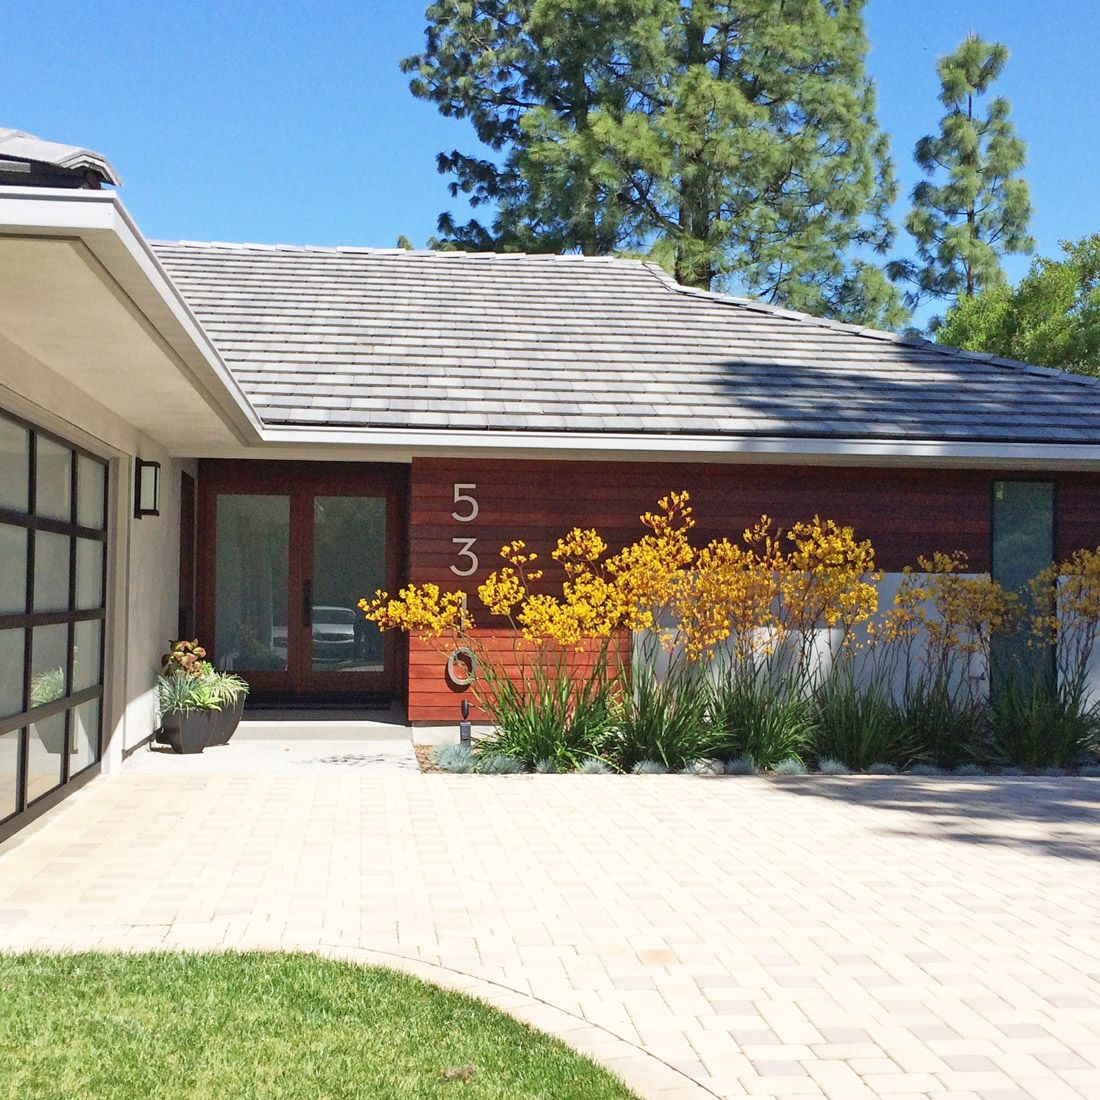 Exterior Remodel Of Ranch Home With Smooth Grey Stucco And